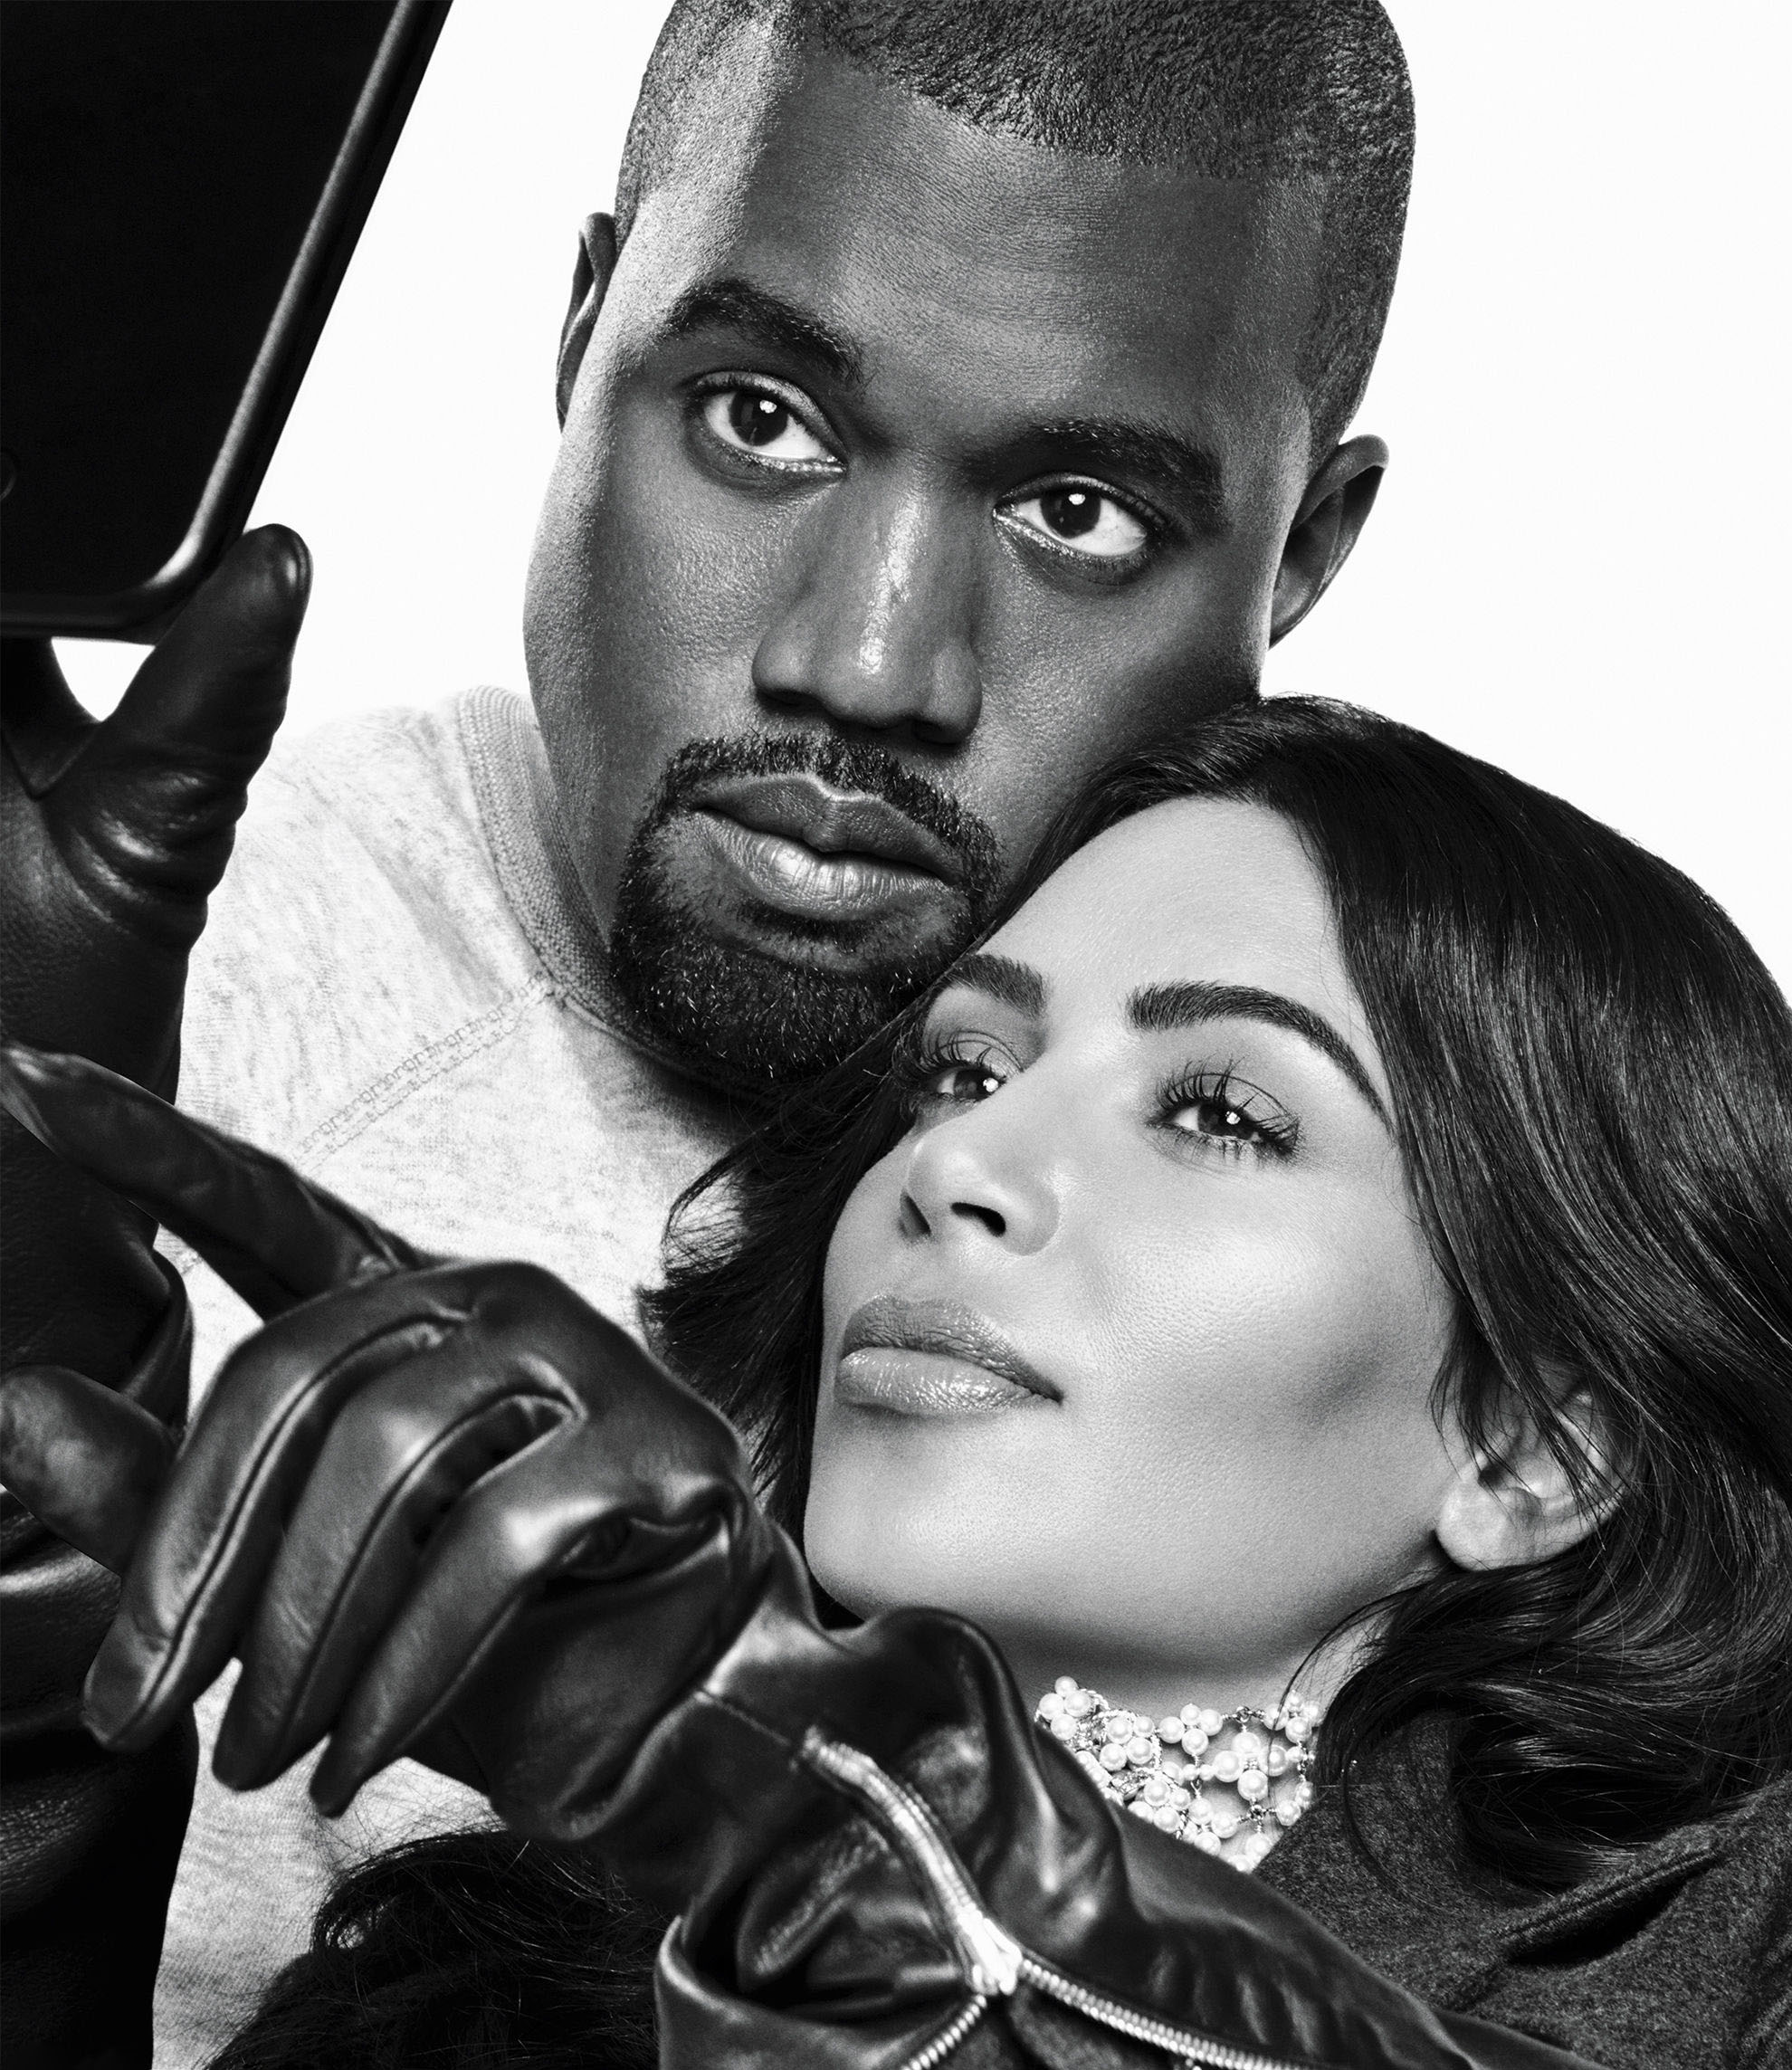 Harpers-Bazaar-US-September-2016-Kim-Kardashian-Kanye-West-by-Karl-Lagerfeld-yesonfashion-04